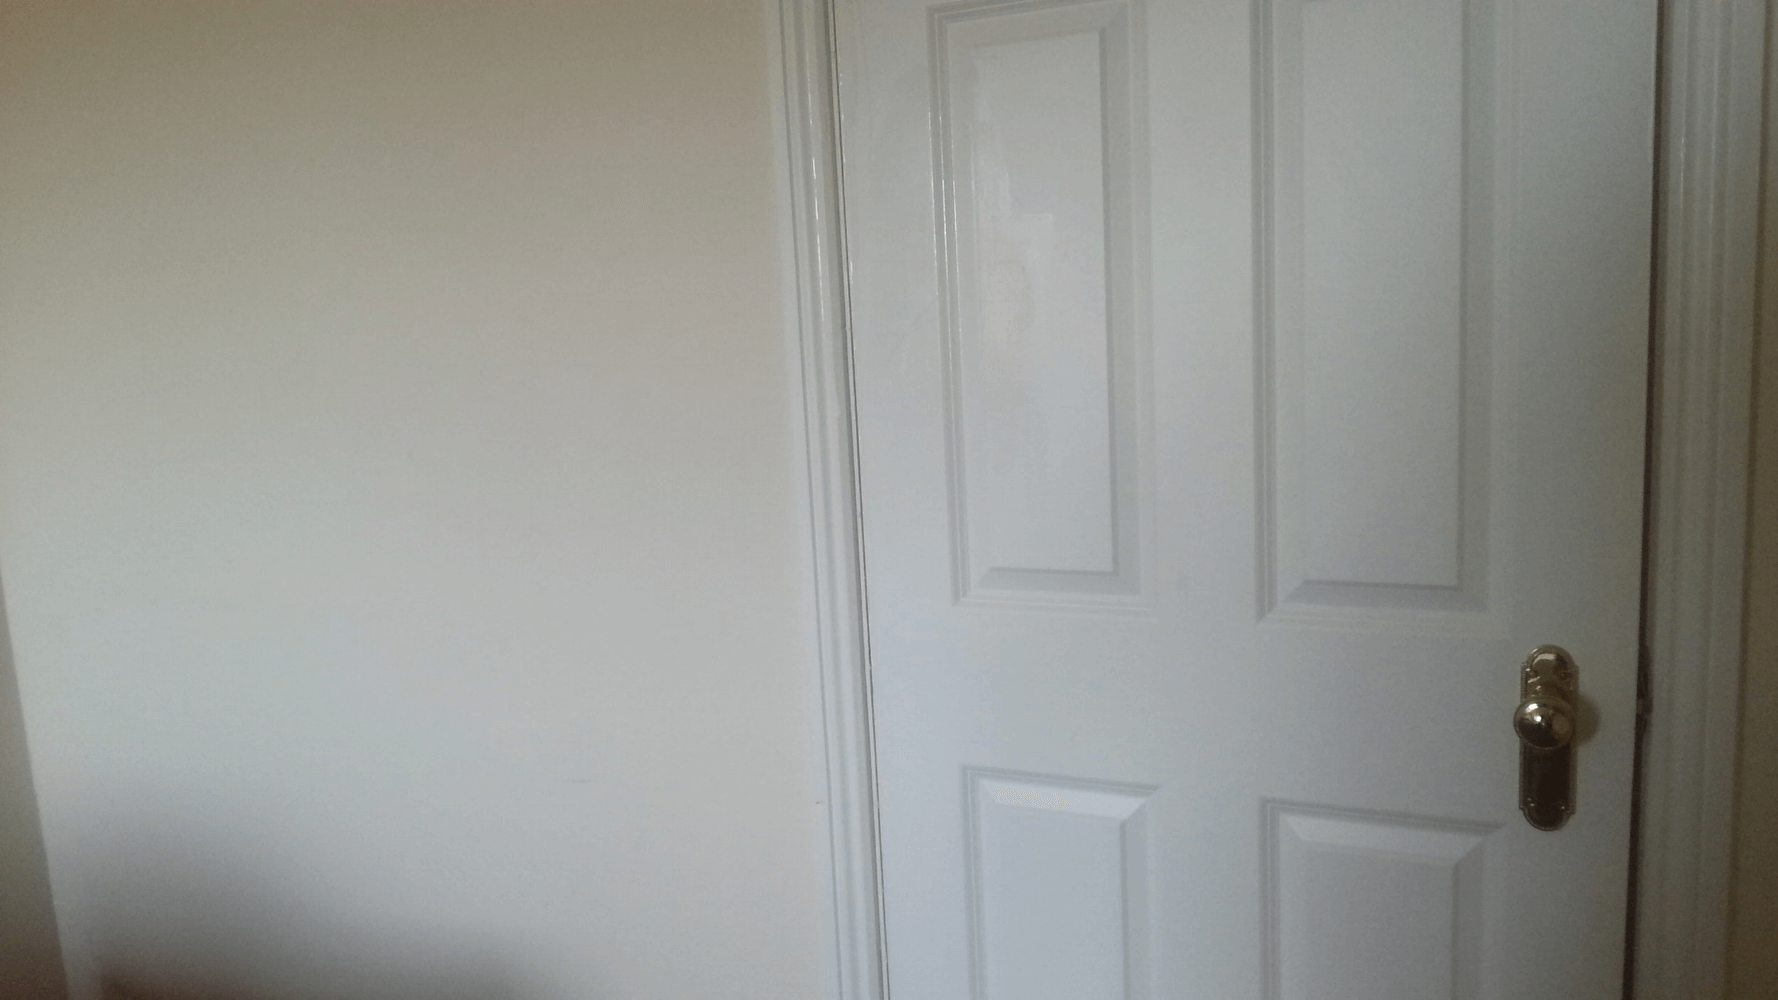 Door in middle of wall leaving Hinge side exposed more